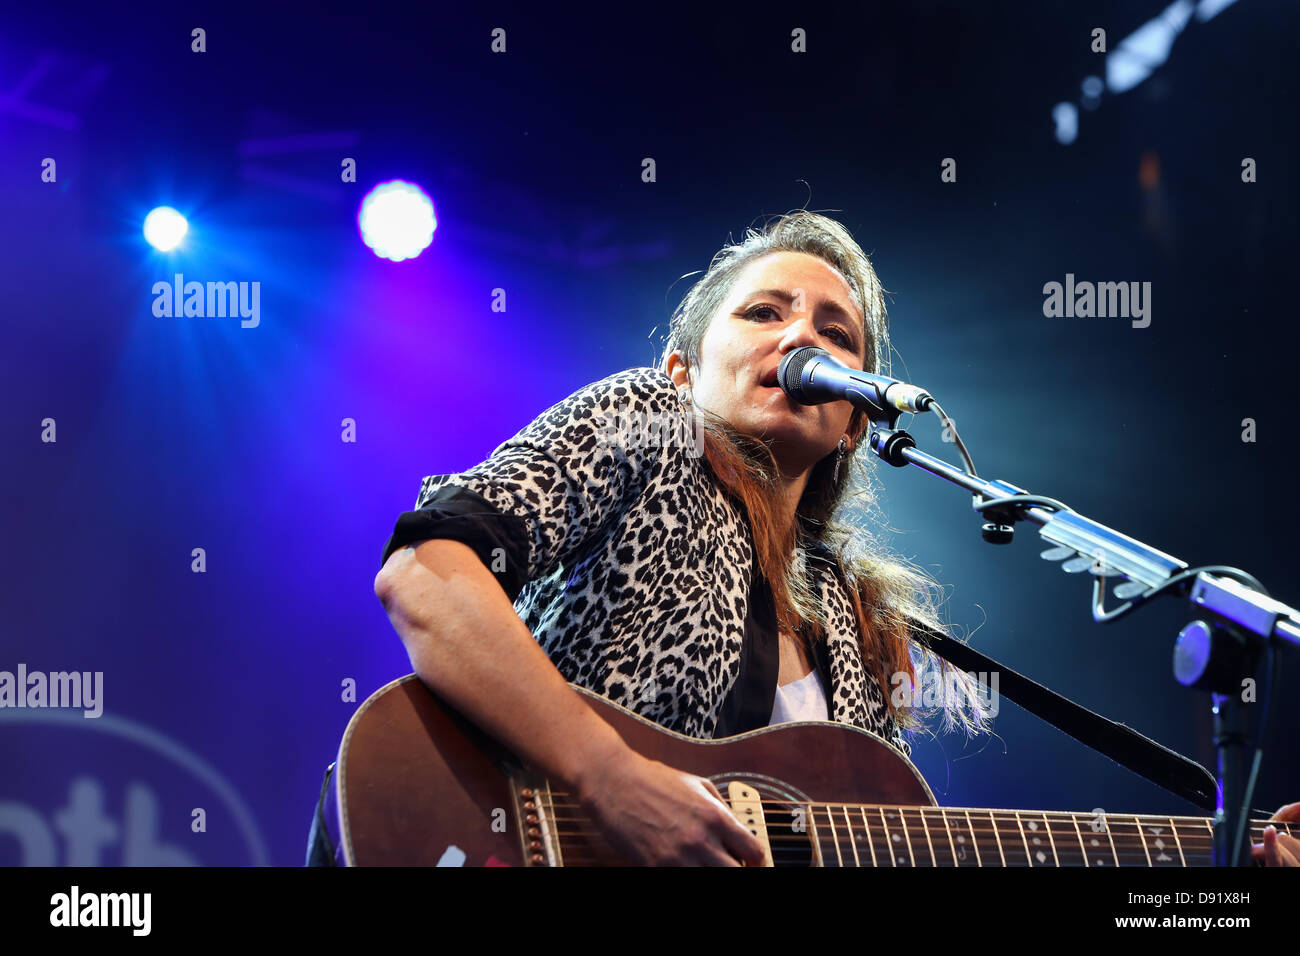 Radio Event Stock Photos & Radio Event Stock Images - Alamy